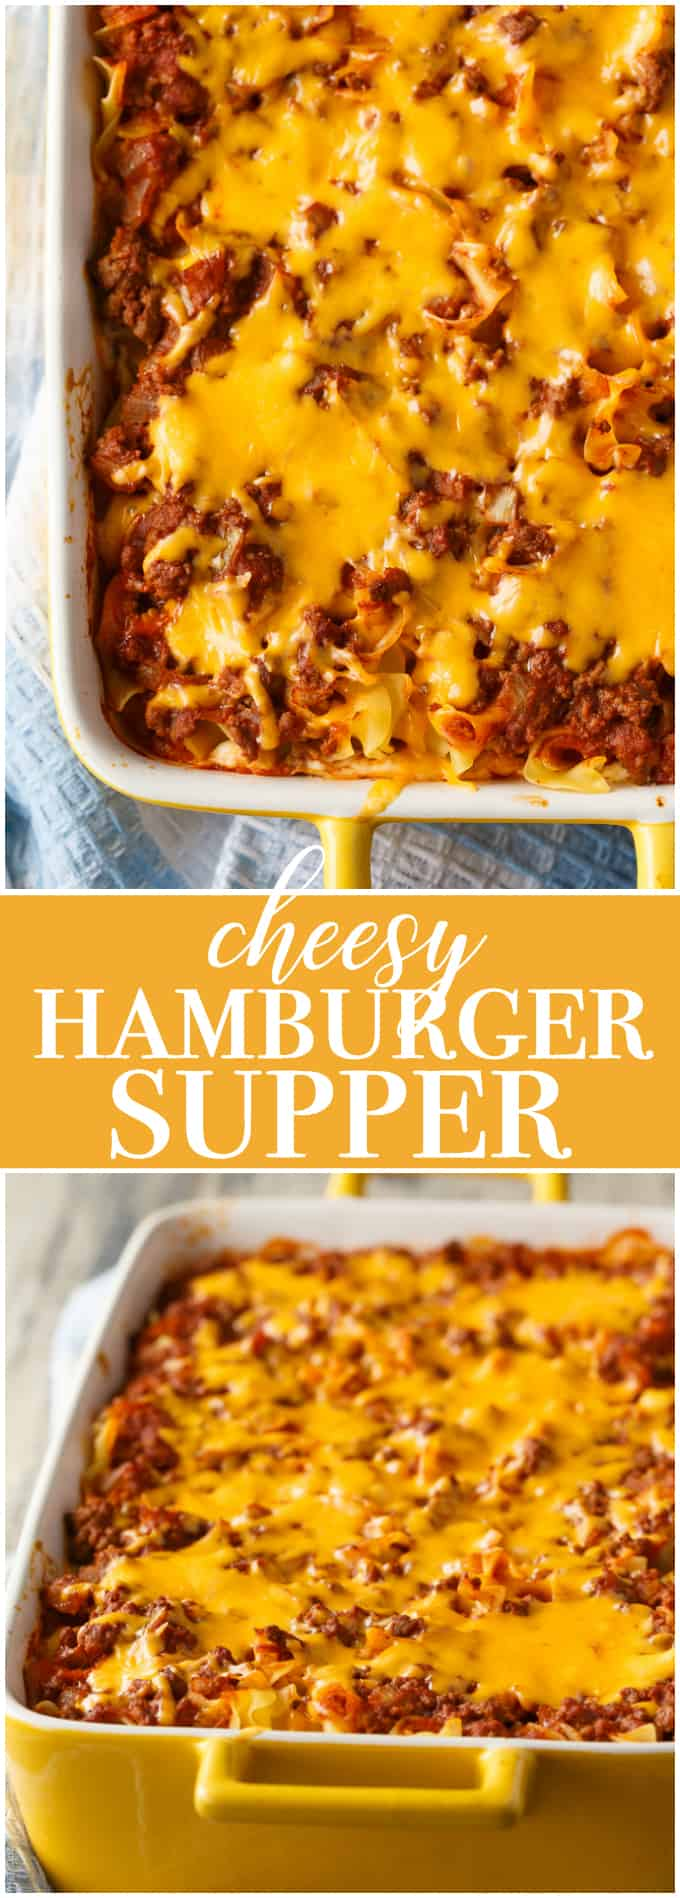 Cheesy Hamburger Supper - This casserole might remind you of a lasagna. It has the same cheesy tomato flavours, but the addition of cream cheese makes it even better!